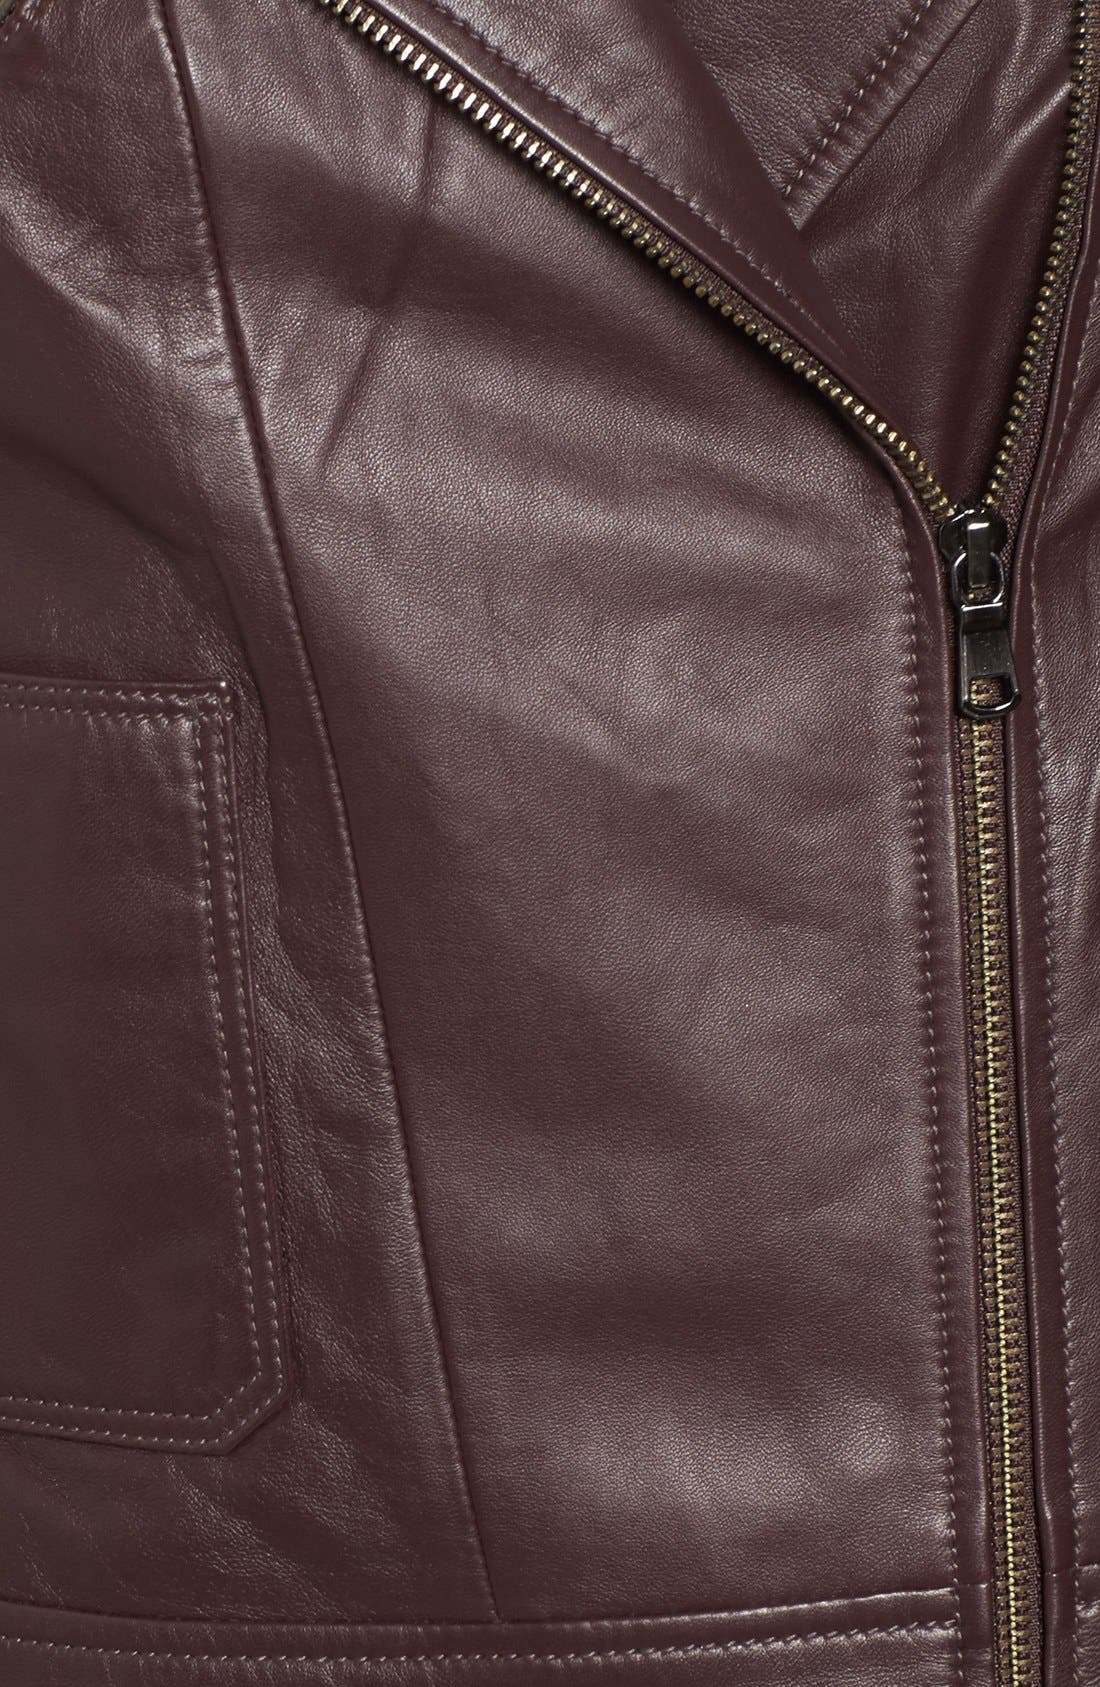 Leather Moto Jacket,                             Alternate thumbnail 6, color,                             201